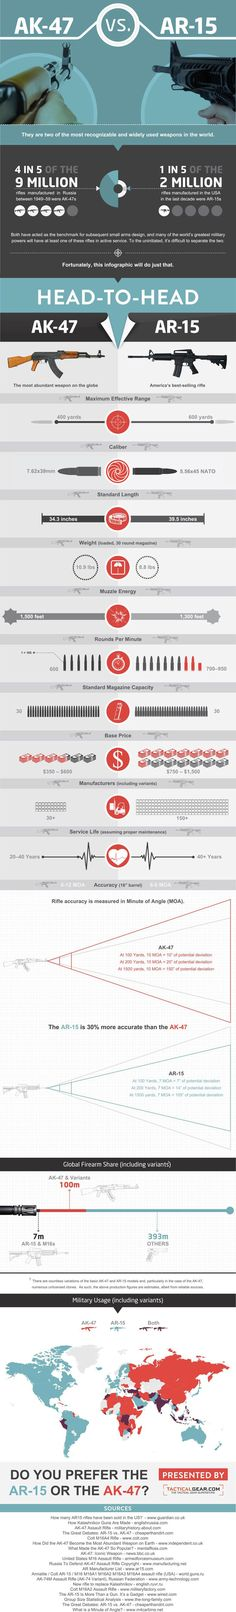 AK-47 vs. AR-15 Infographic cool custom body armor gear like bulletproof…